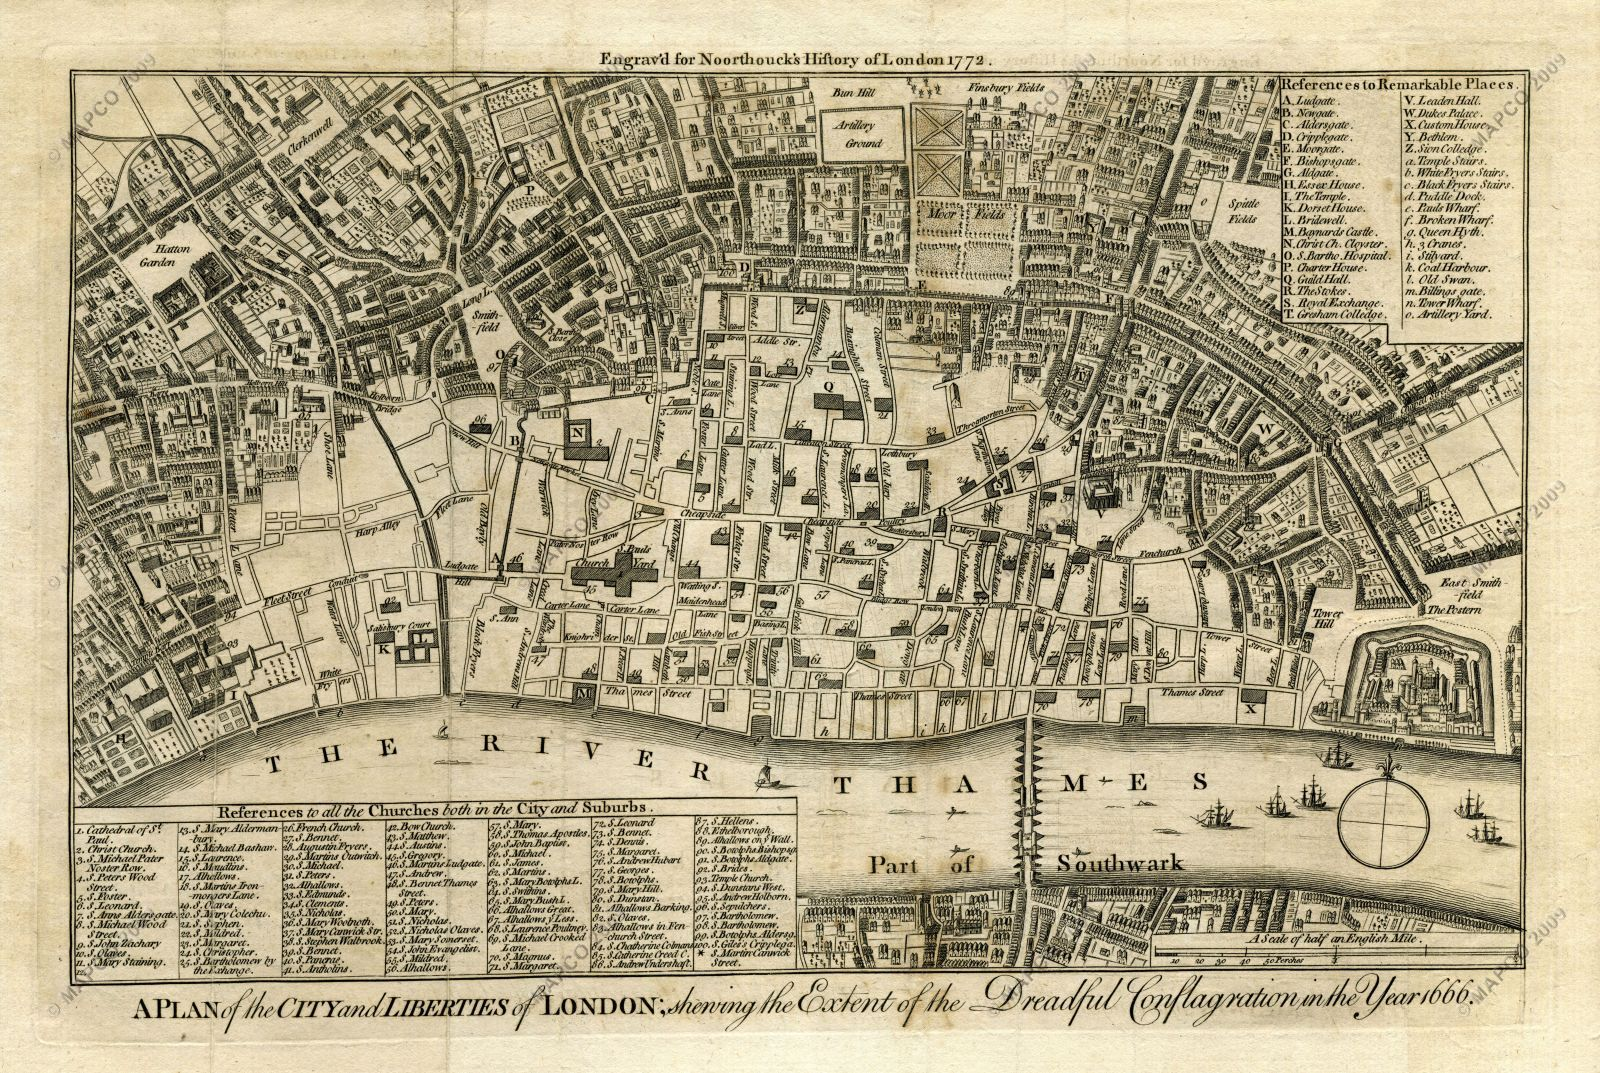 A Plan of the City and Liberties of London; Shewing the Extent of the Dreadful Conflagration in the Year 1666 (Wenceslaus Hollar). Image courtesy of Map and Plan Collection Online (MAPCO).